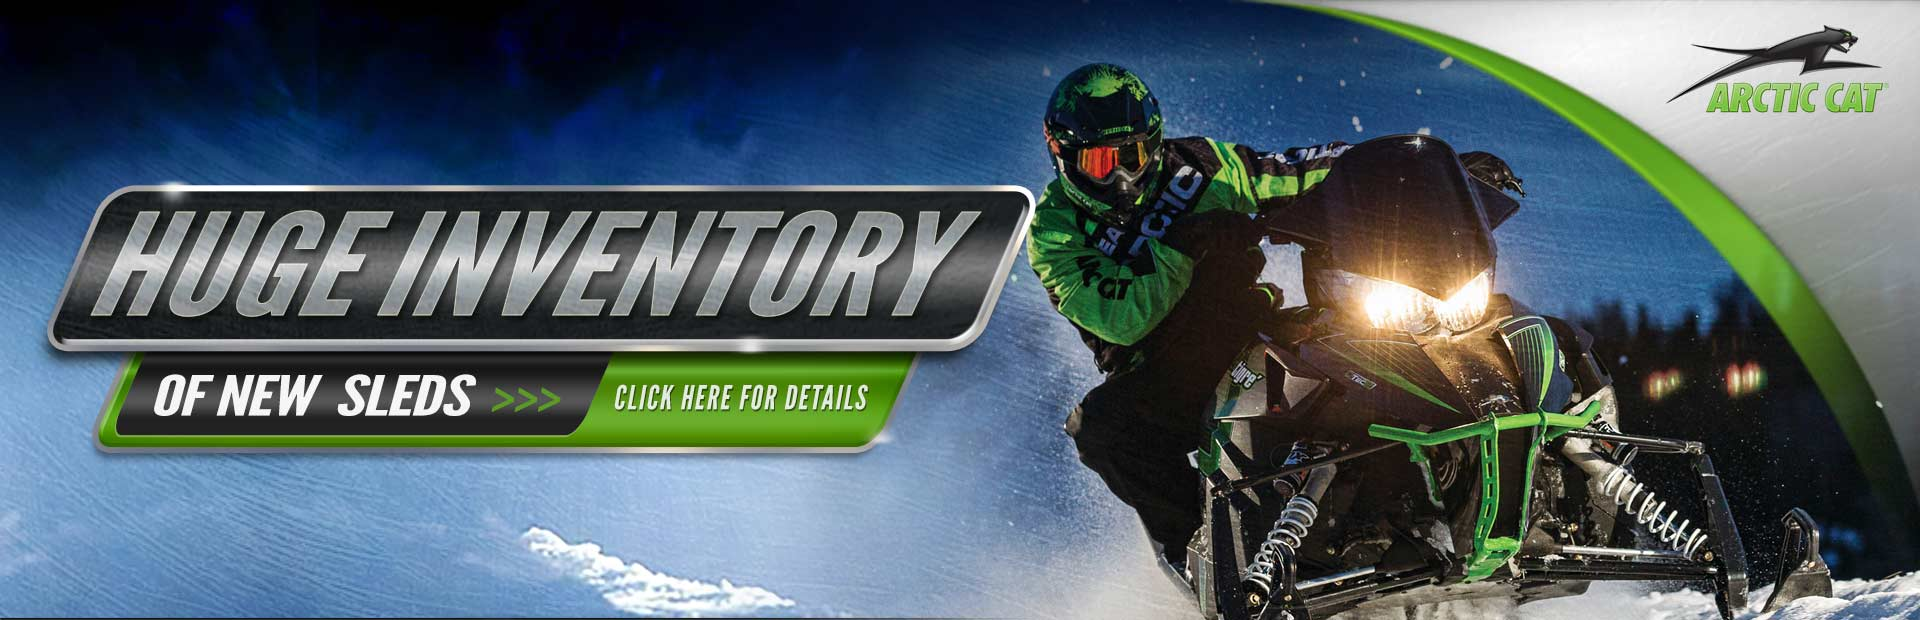 Click here to check out our huge inventory of new Arctic Cat sleds!